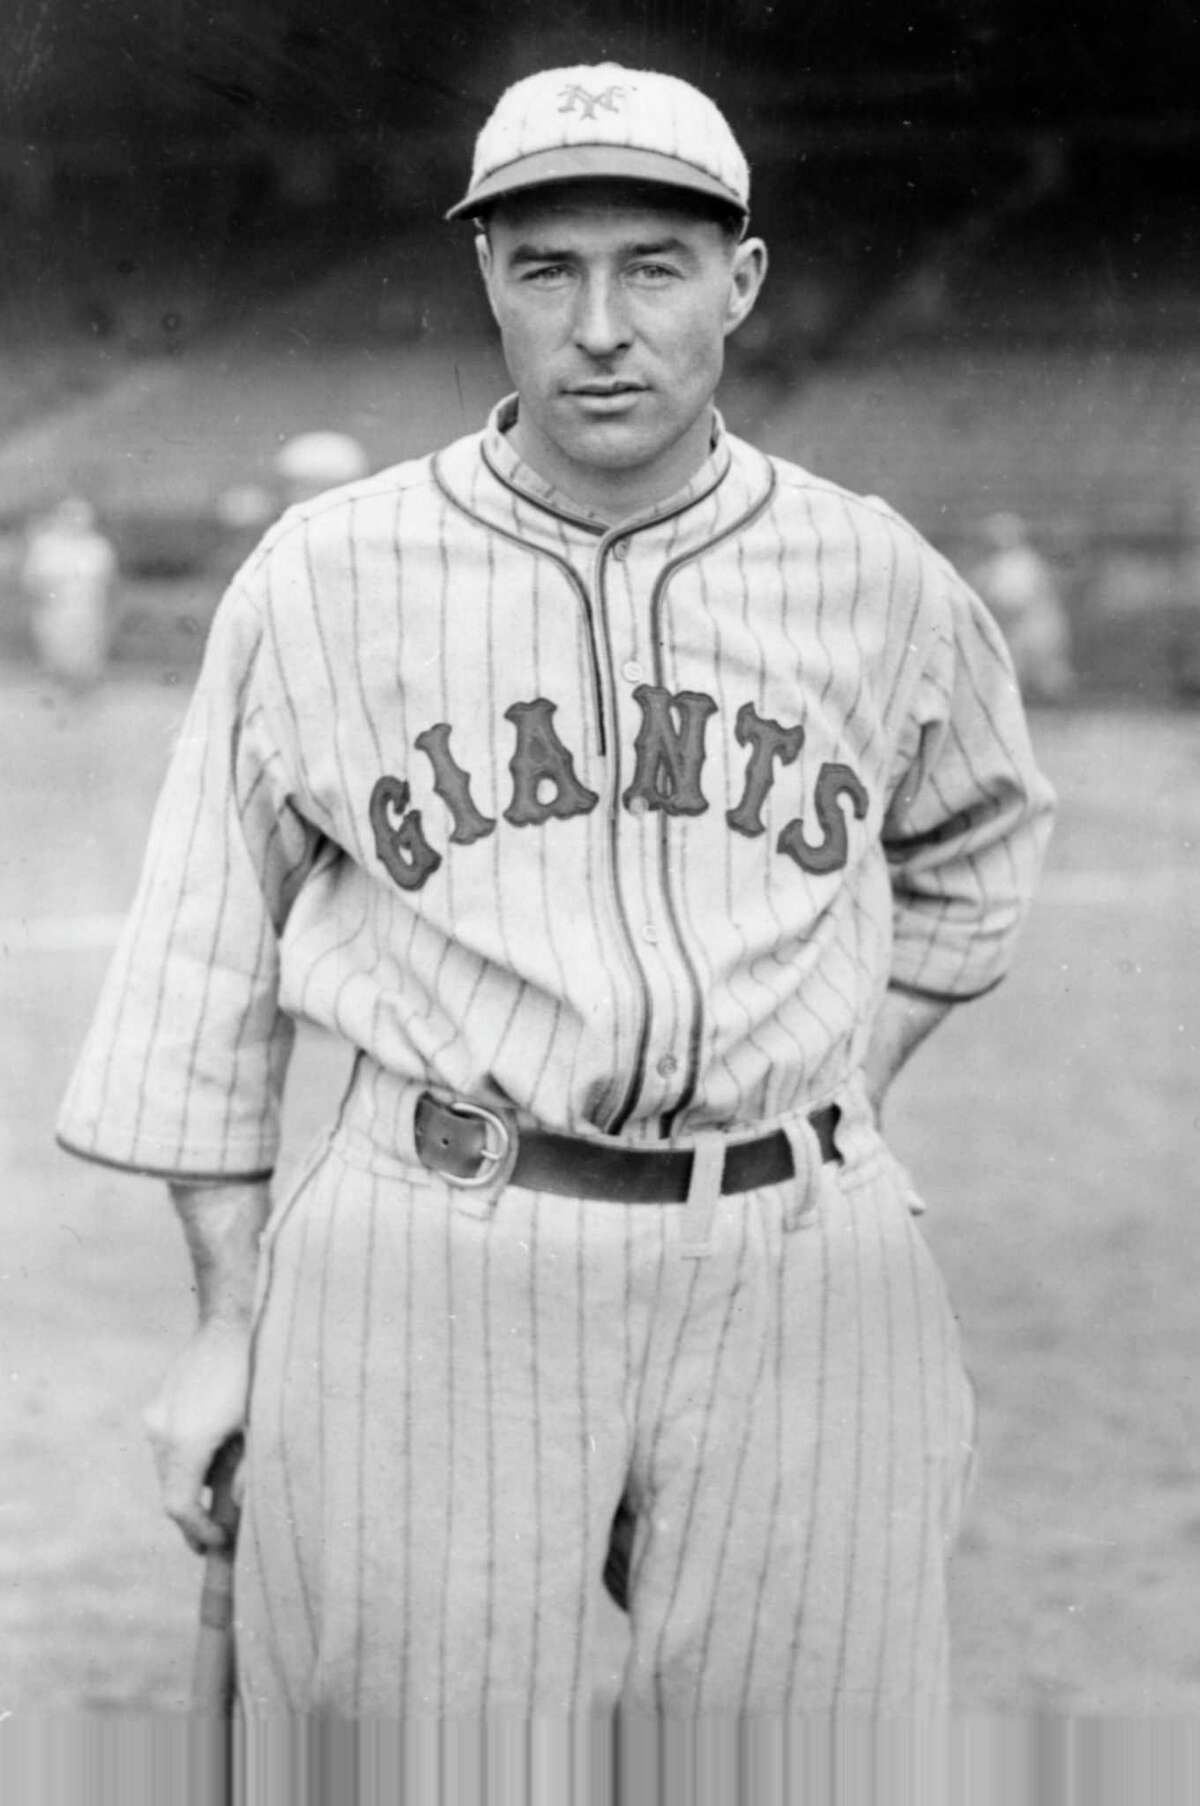 History: Lefty O'Doul, new outfielder for the New York Giants, poses on May 24, 1928. (AP Photo) Ran on: 10-04-2004 Lefty O'Doul succeeded as a big-league player, then succeeded as a Pacific Coast League manager and San Francisco restaurateur.